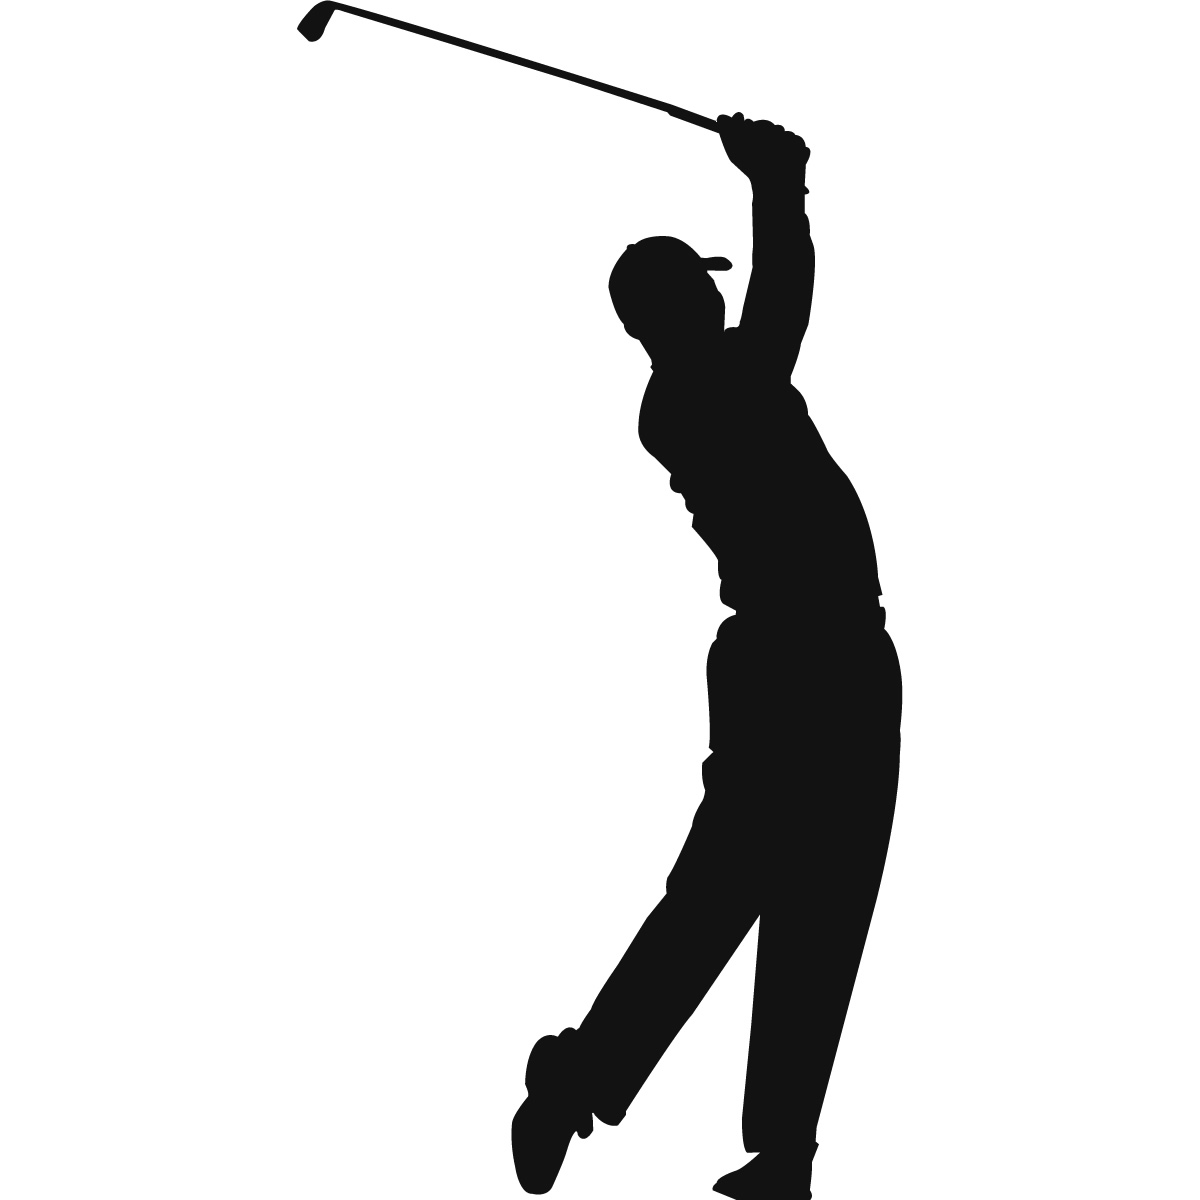 hight resolution of golf clip art microsoft free clipart images 4